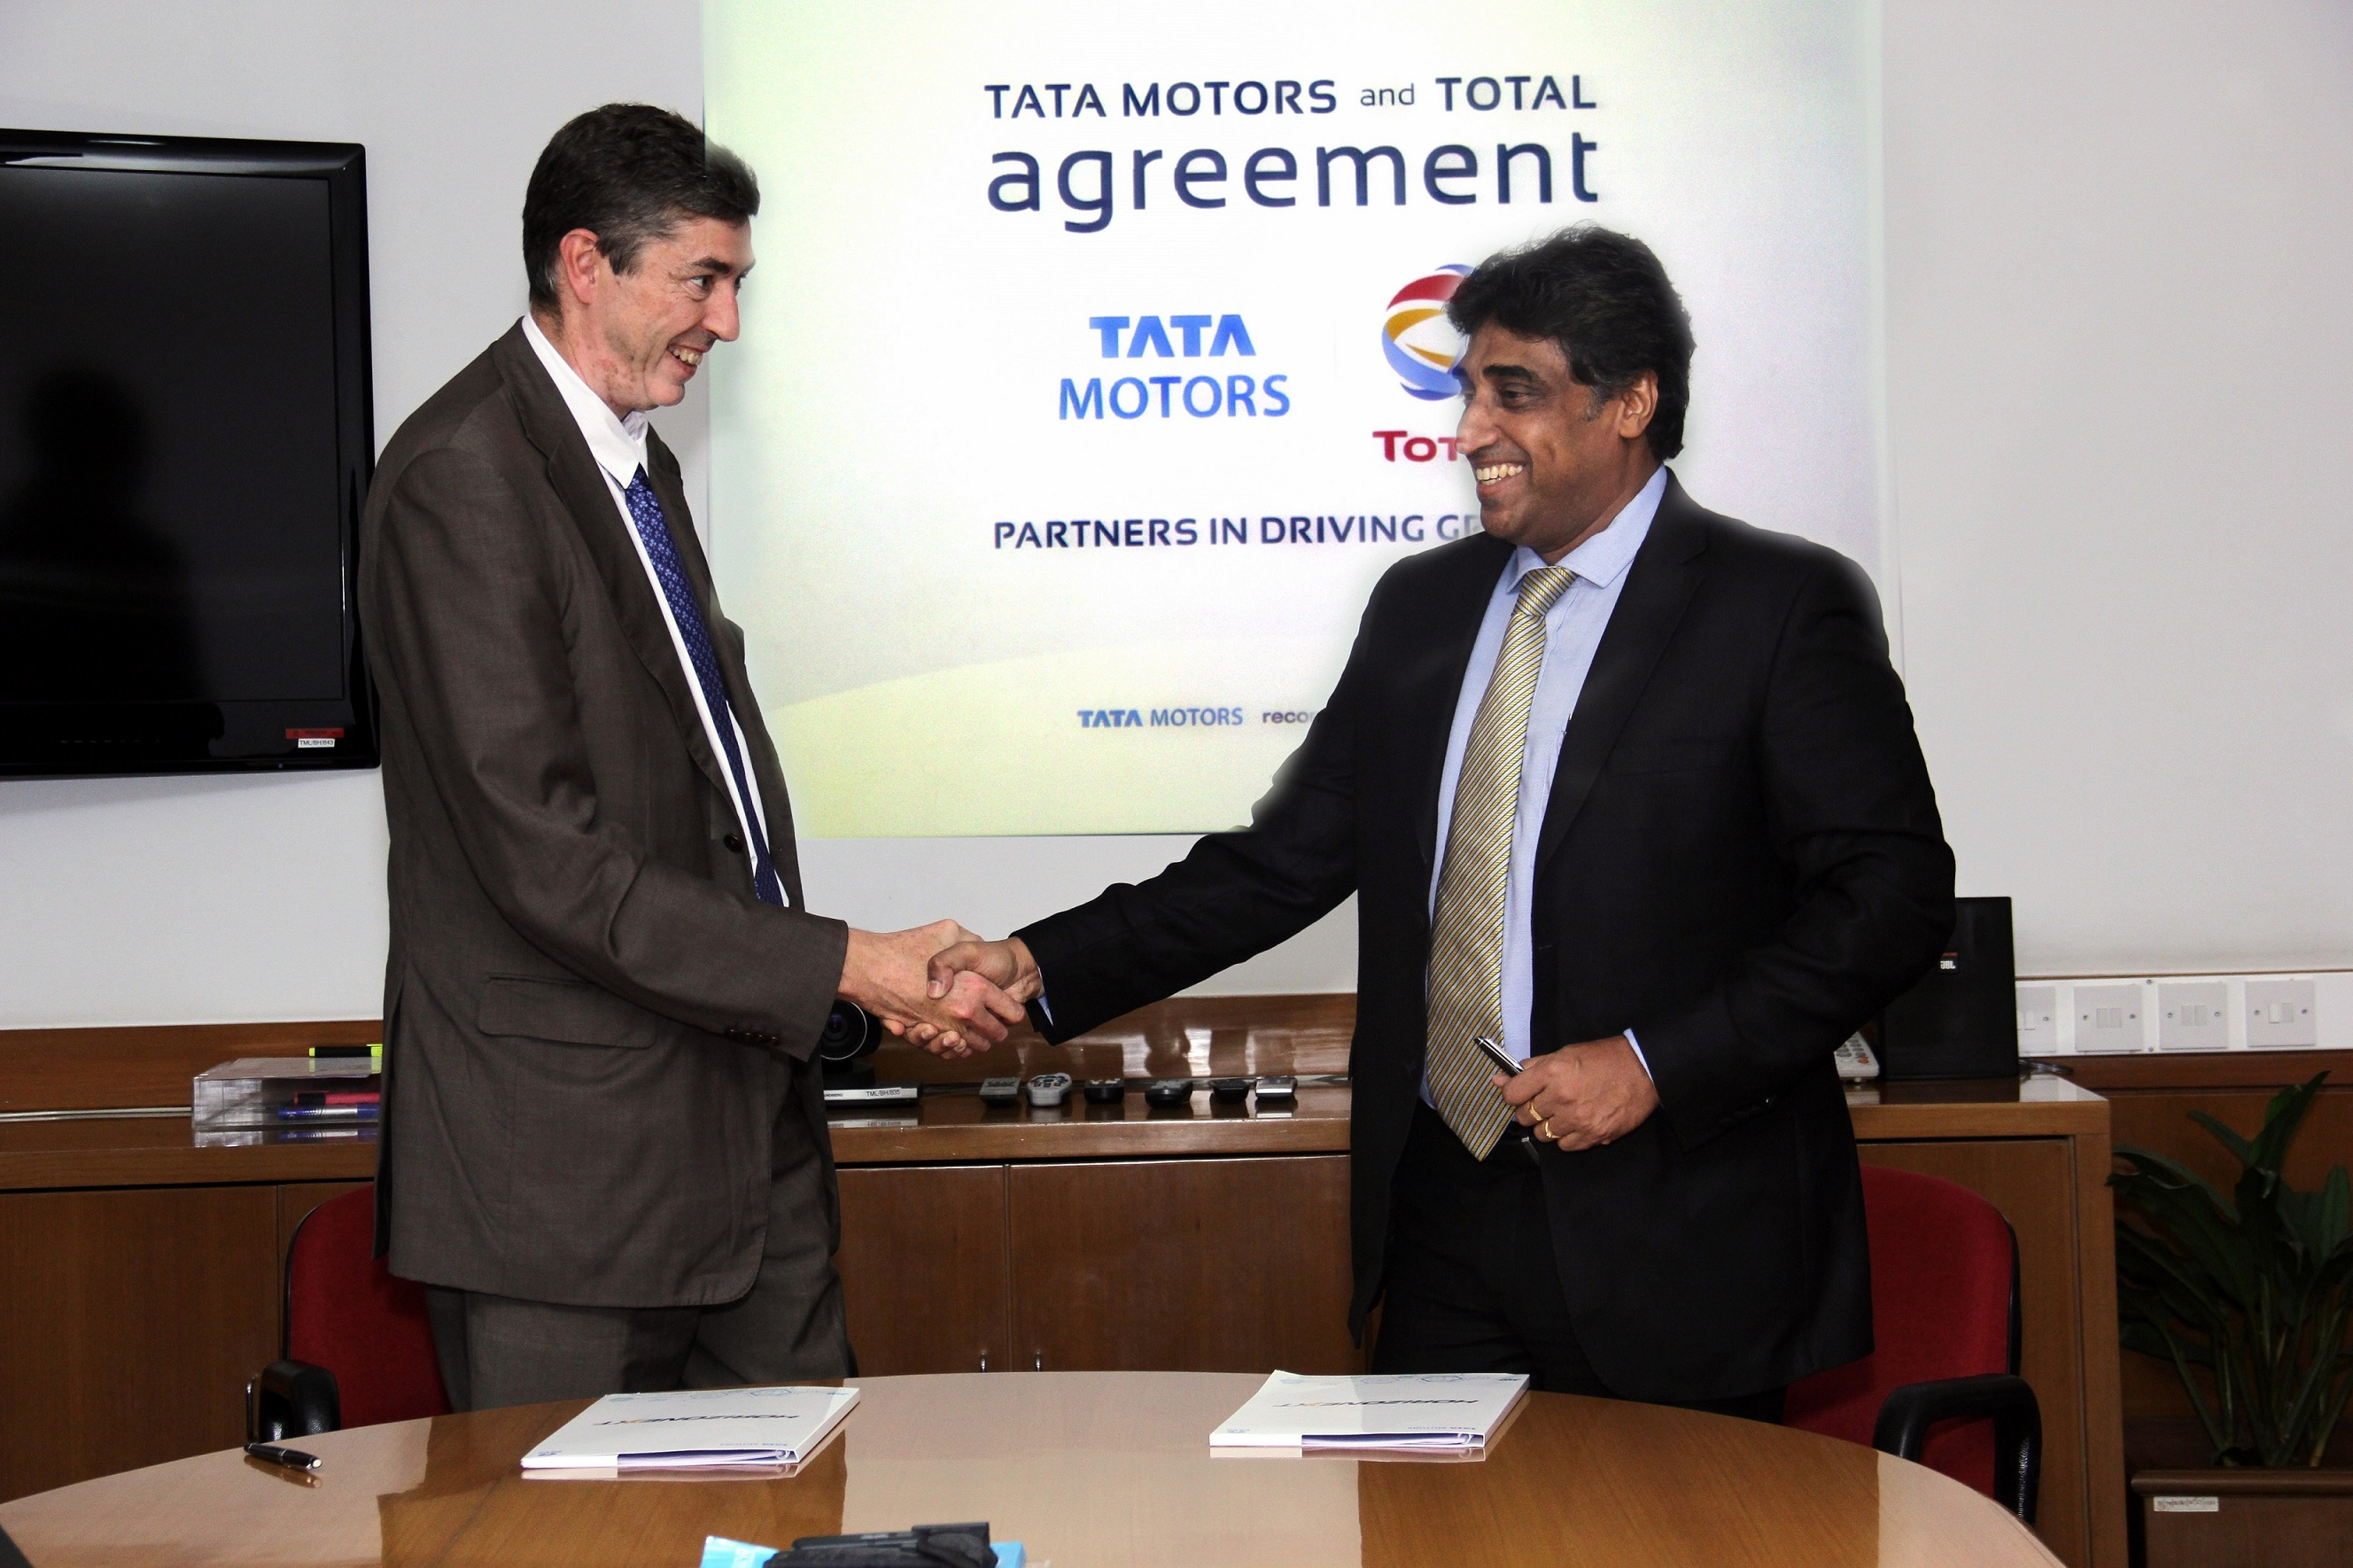 TATA Motors recommends TOTAL -  G.SHETTY and P.CHARLEUX